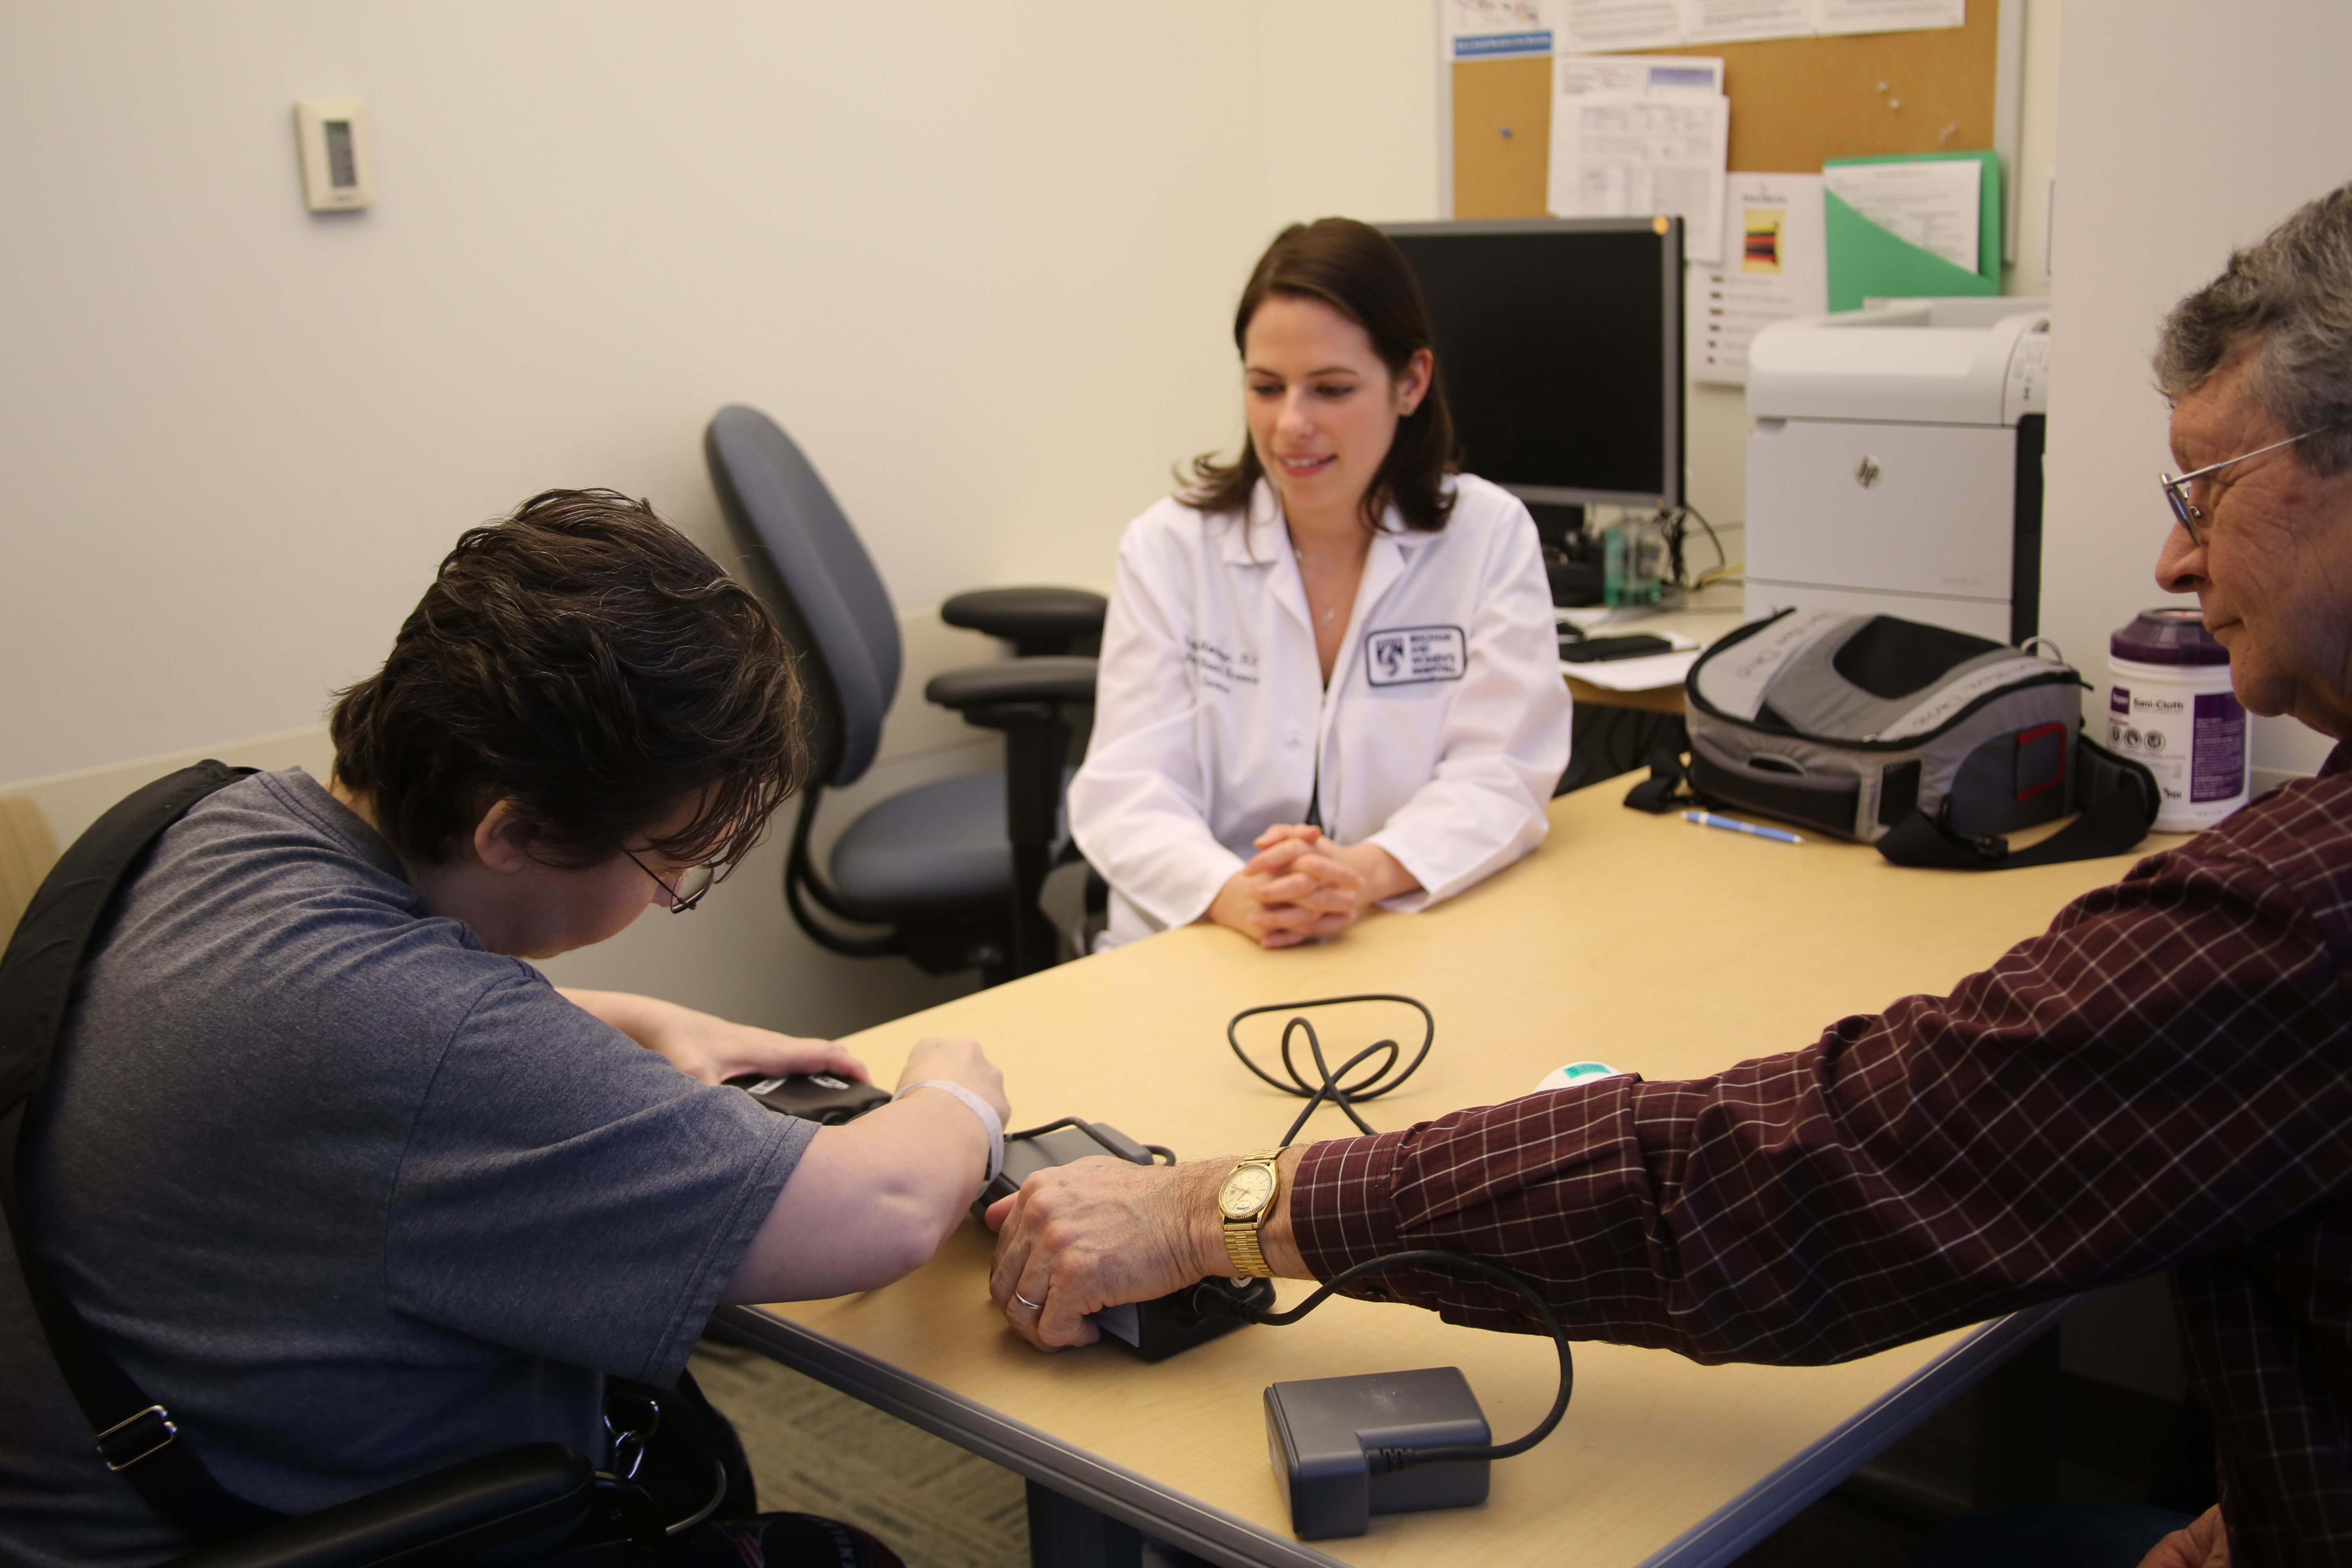 From left: Patient Amy Prince practices hooking up a backup VAD device, with help from BWH nurse Krysten Montoya and Amy's father, Don Prince.